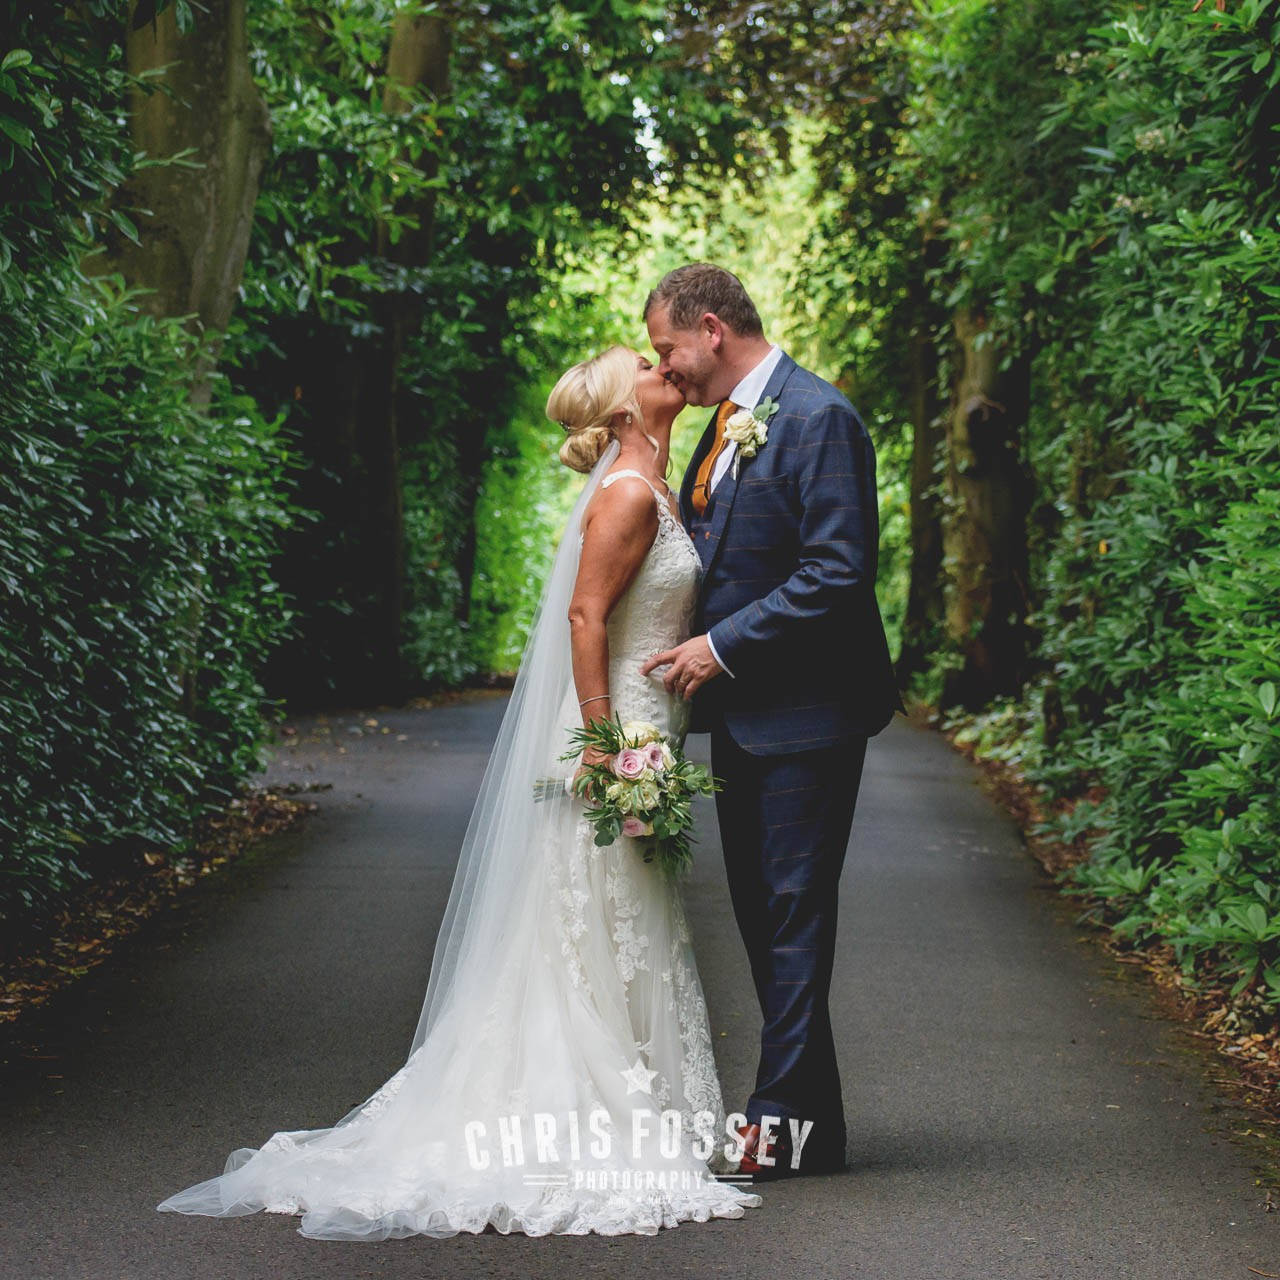 Warwickshire Wedding Photography Portfolio-Nuthurst Grange Solihull Birmingham Wedding Photography by Chris Fossey Photographer (6)-160